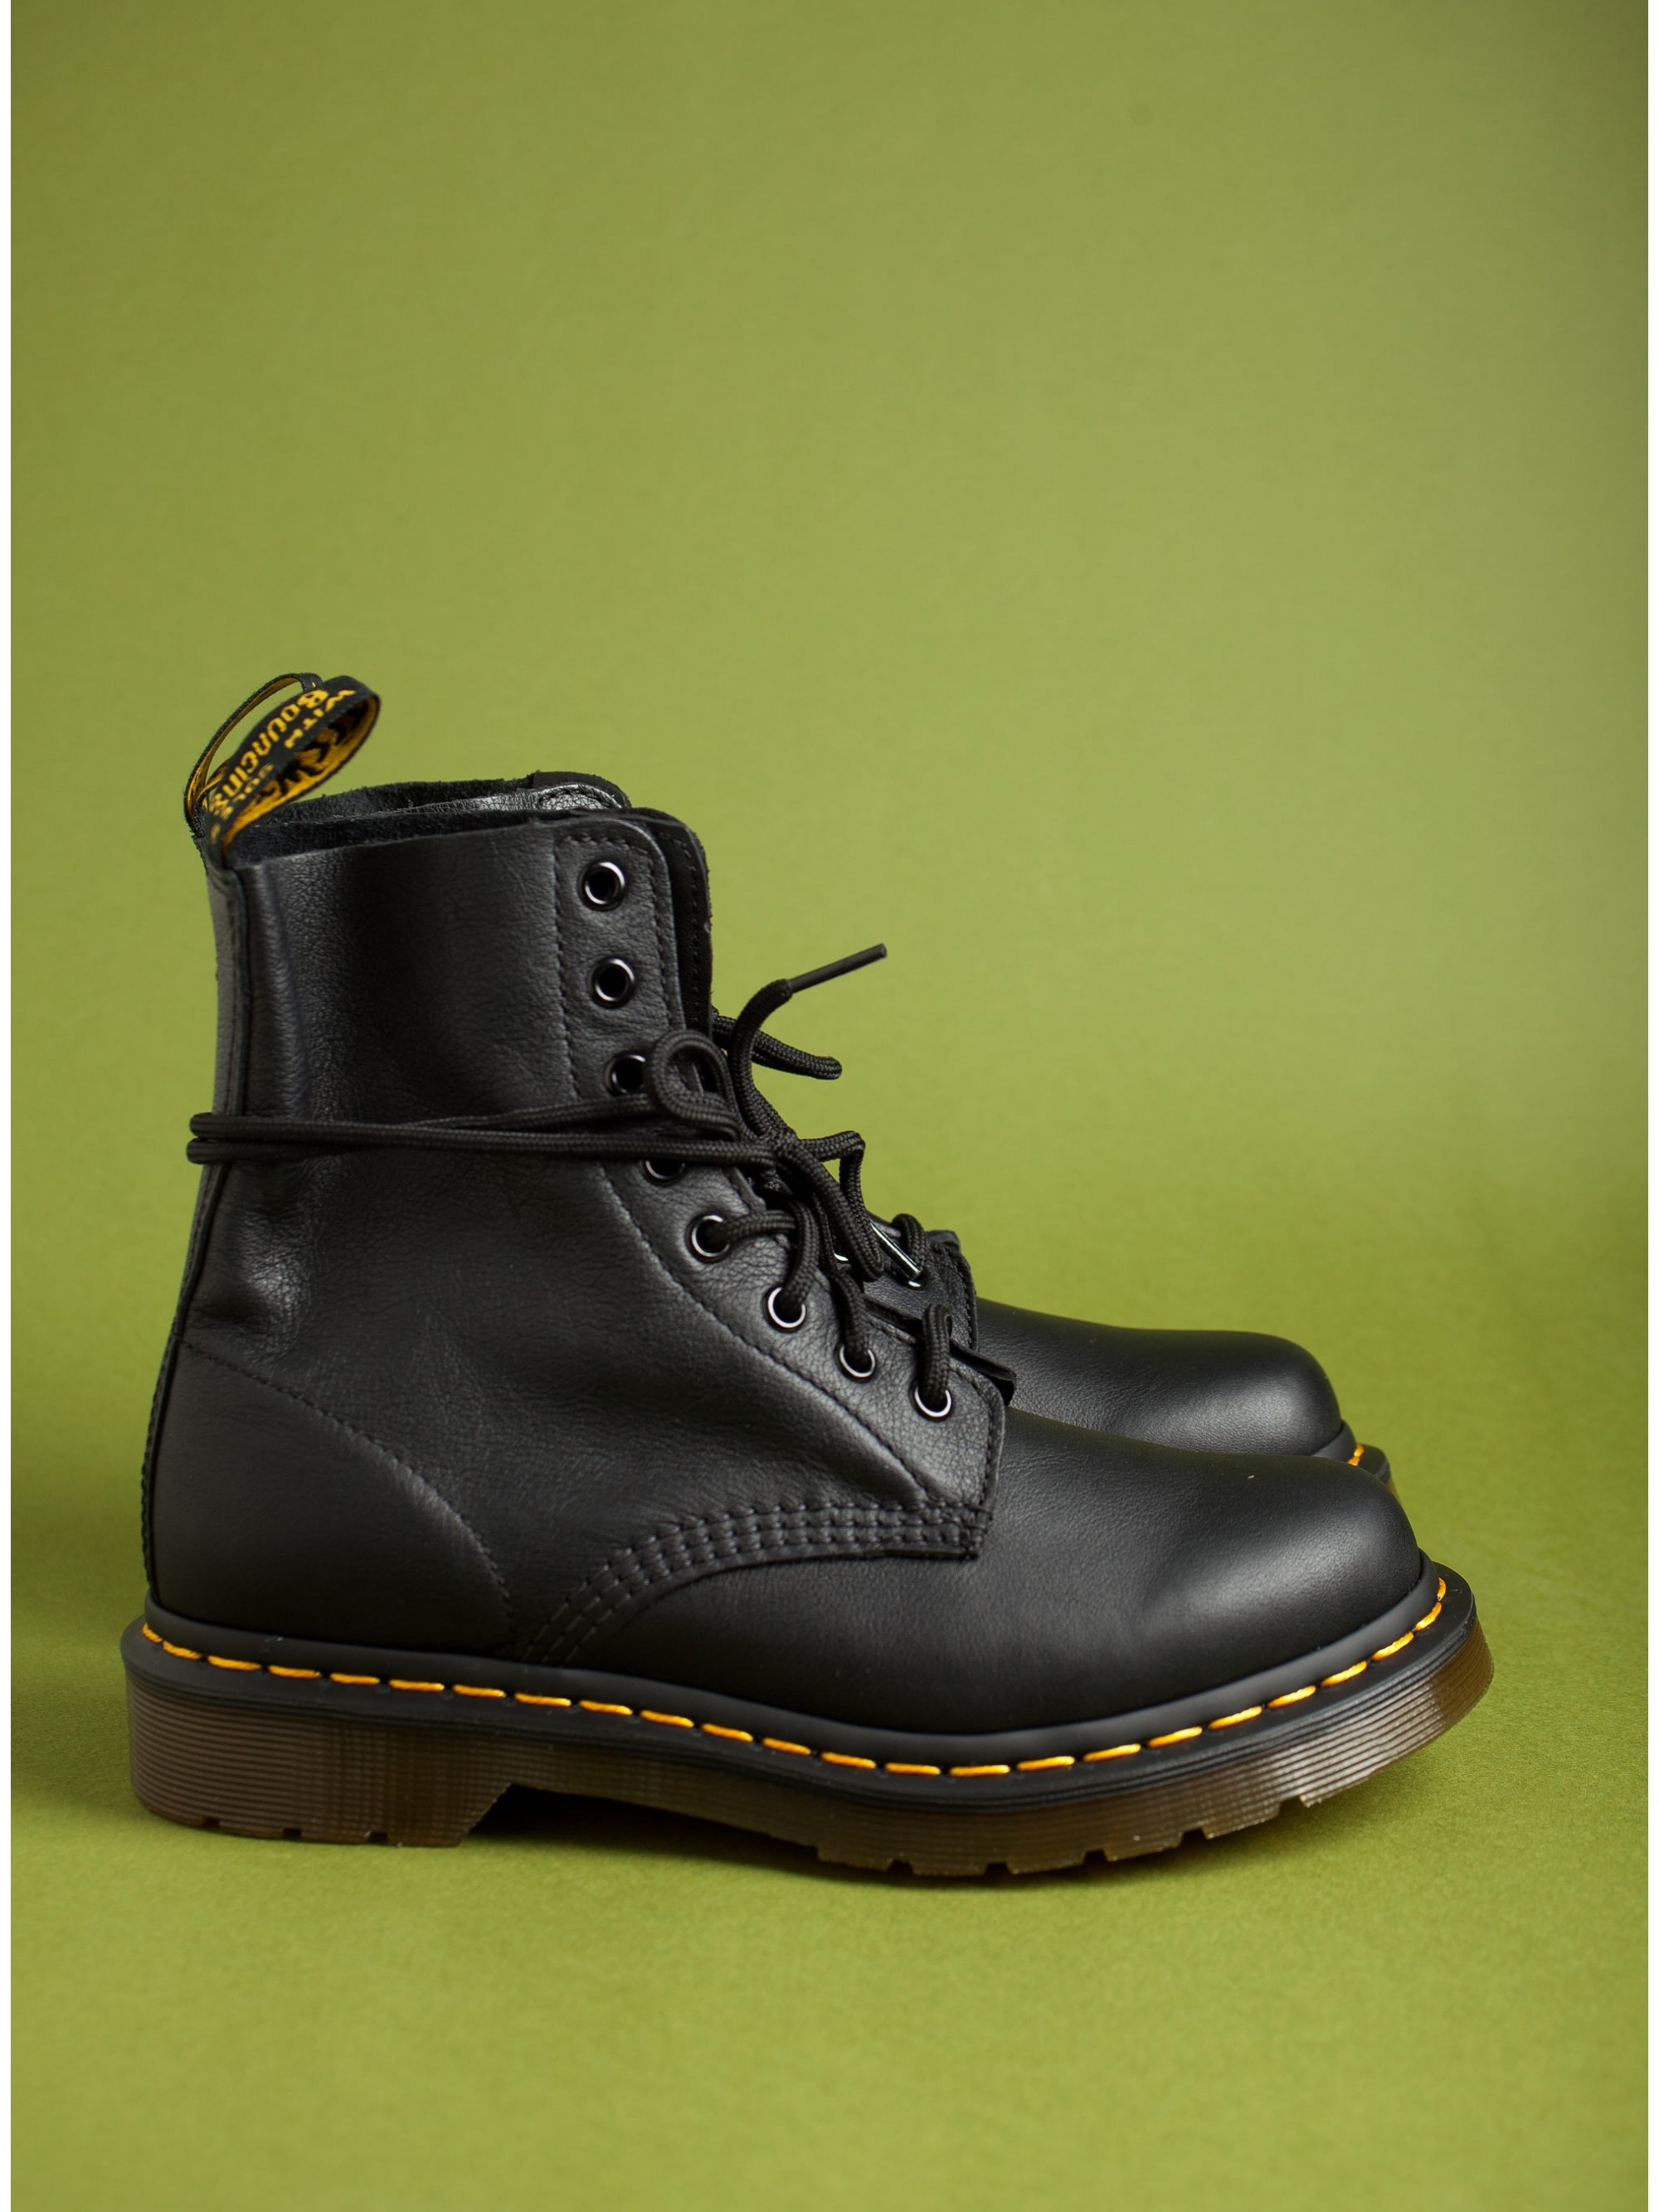 favorable price best place for highly praised Dr Martens 1460 Pascal 8 Soft Leather-Eye Boots-Black - Women